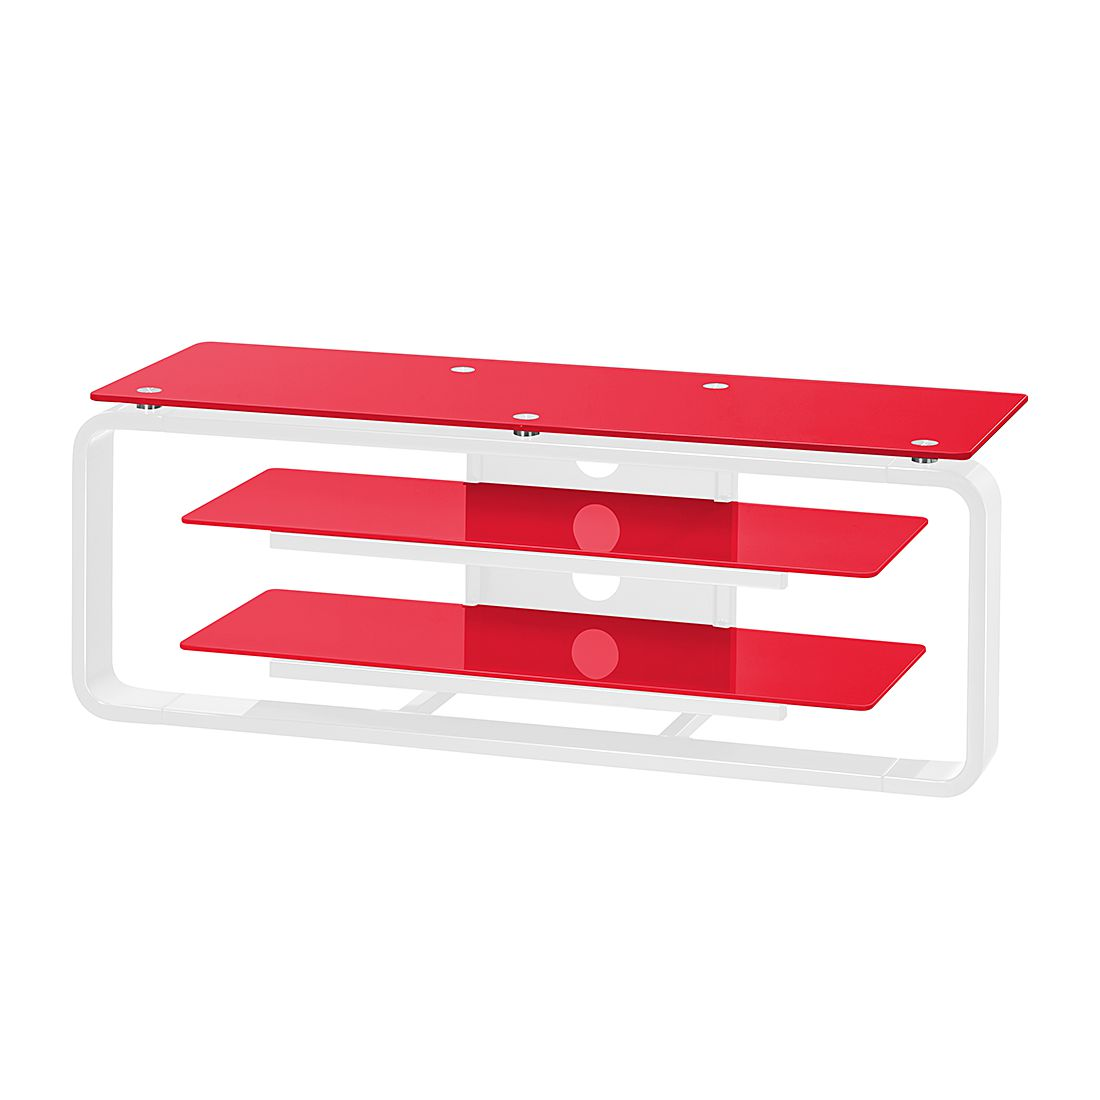 Meuble TV Rack Jared I - Blanc / Verre rouge - 110 cm, Maja Möbel